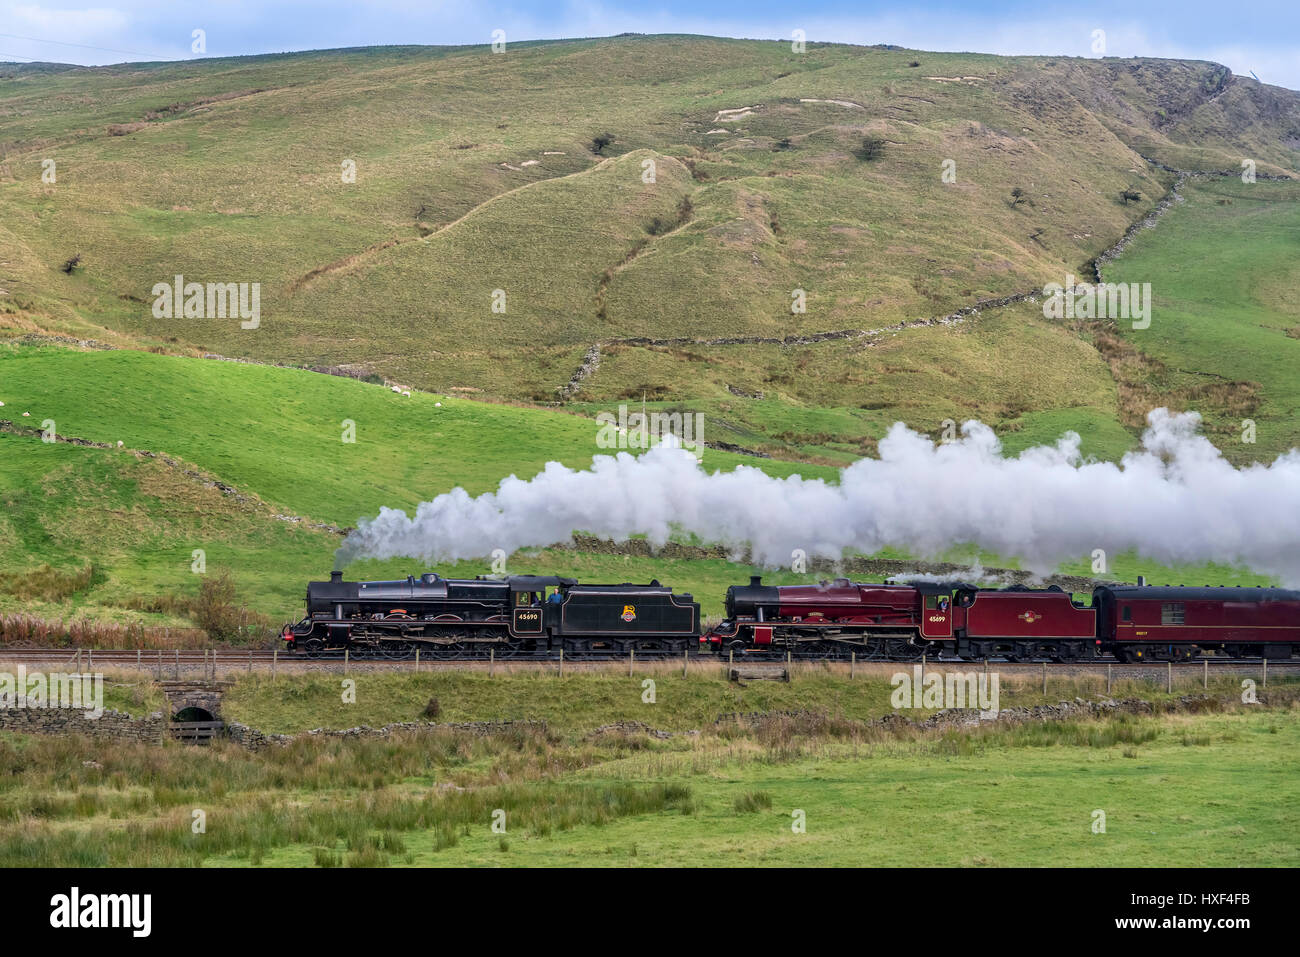 Two Jubilee Class steam engines 45690 'Leander' and 45699 'Galatea' running together on their light - Stock Image